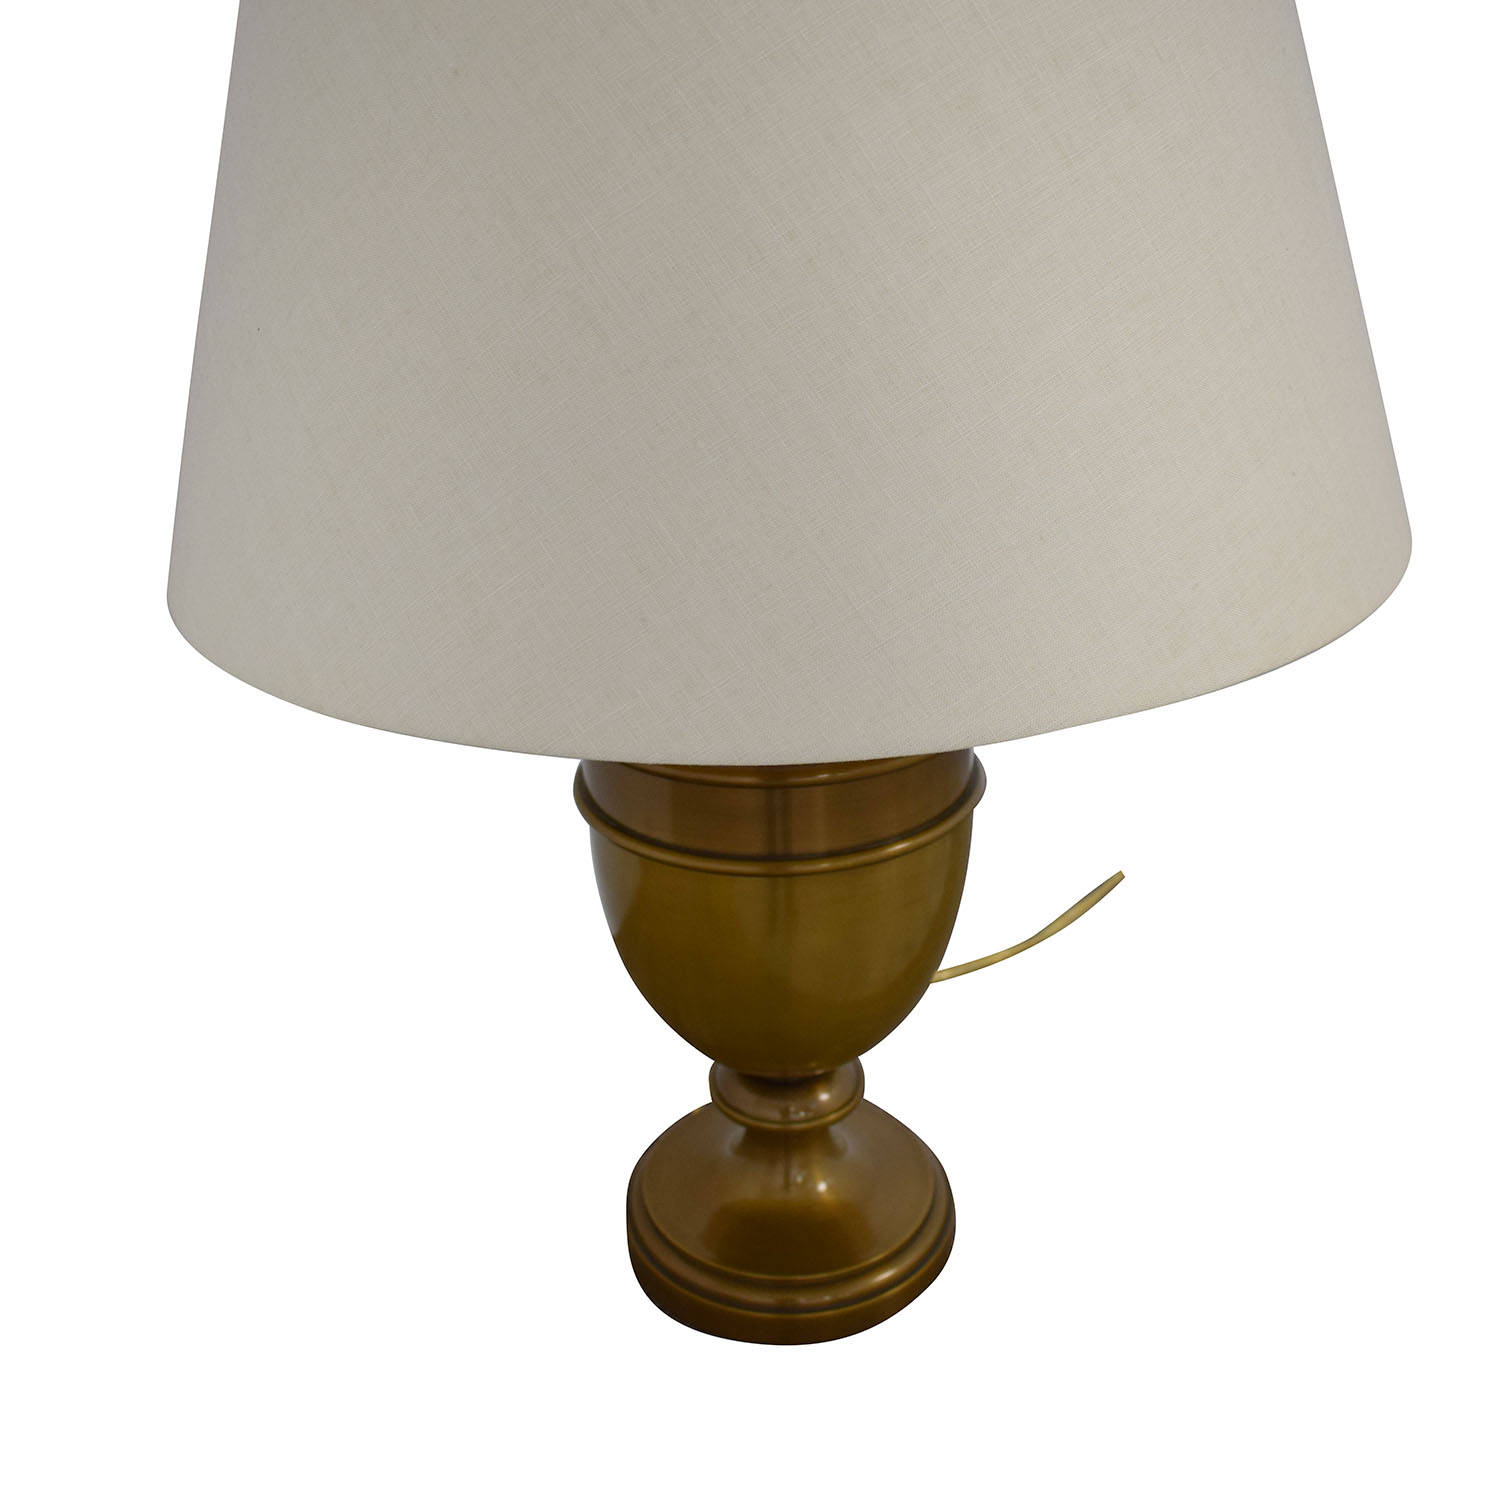 Ethan Allen Ethan Allen Urn Table Lamp used